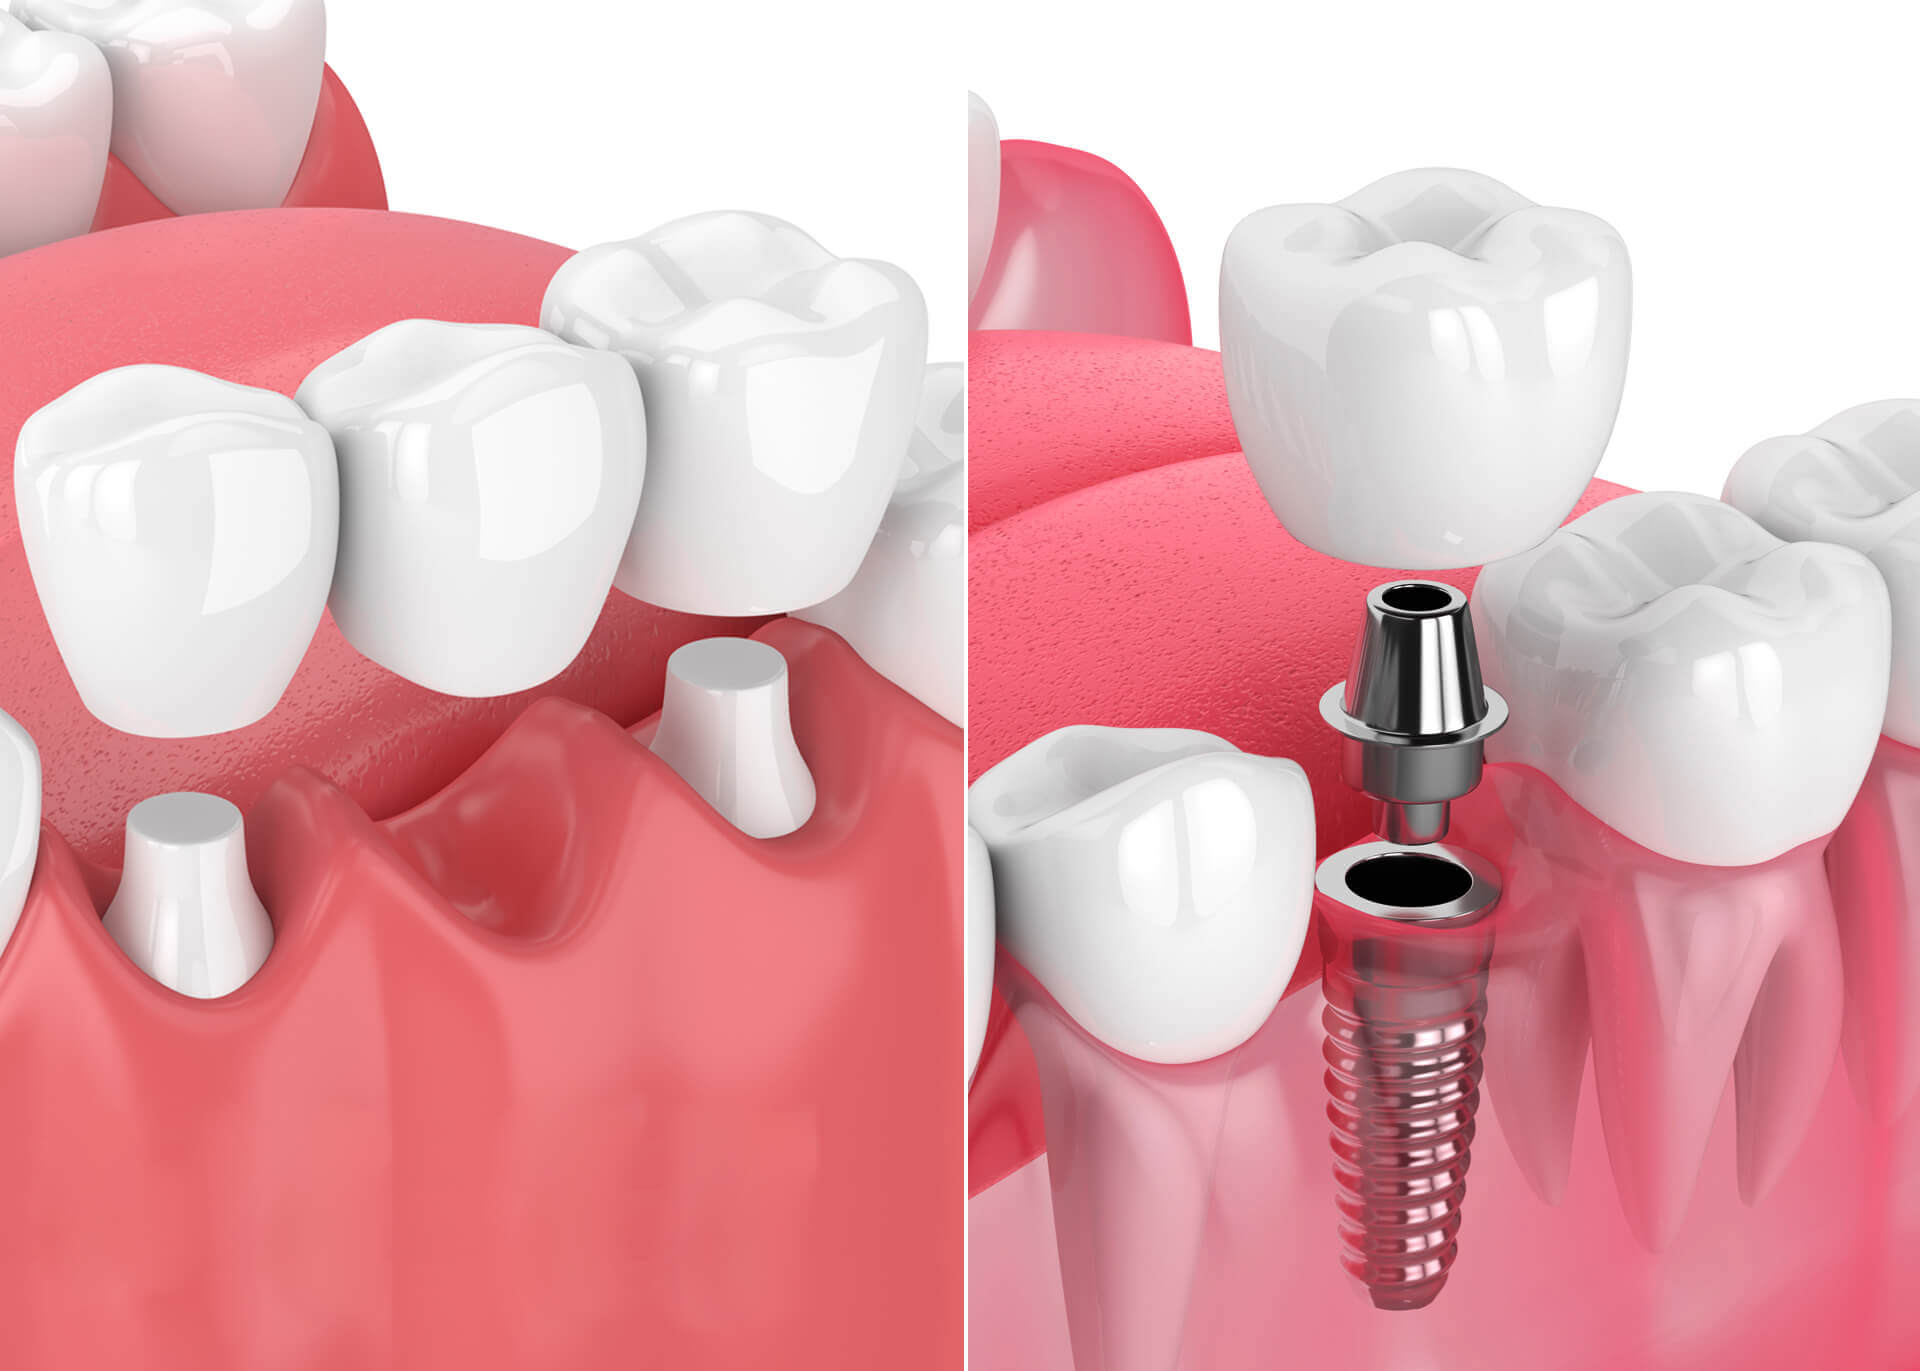 dental implants rather than bridges